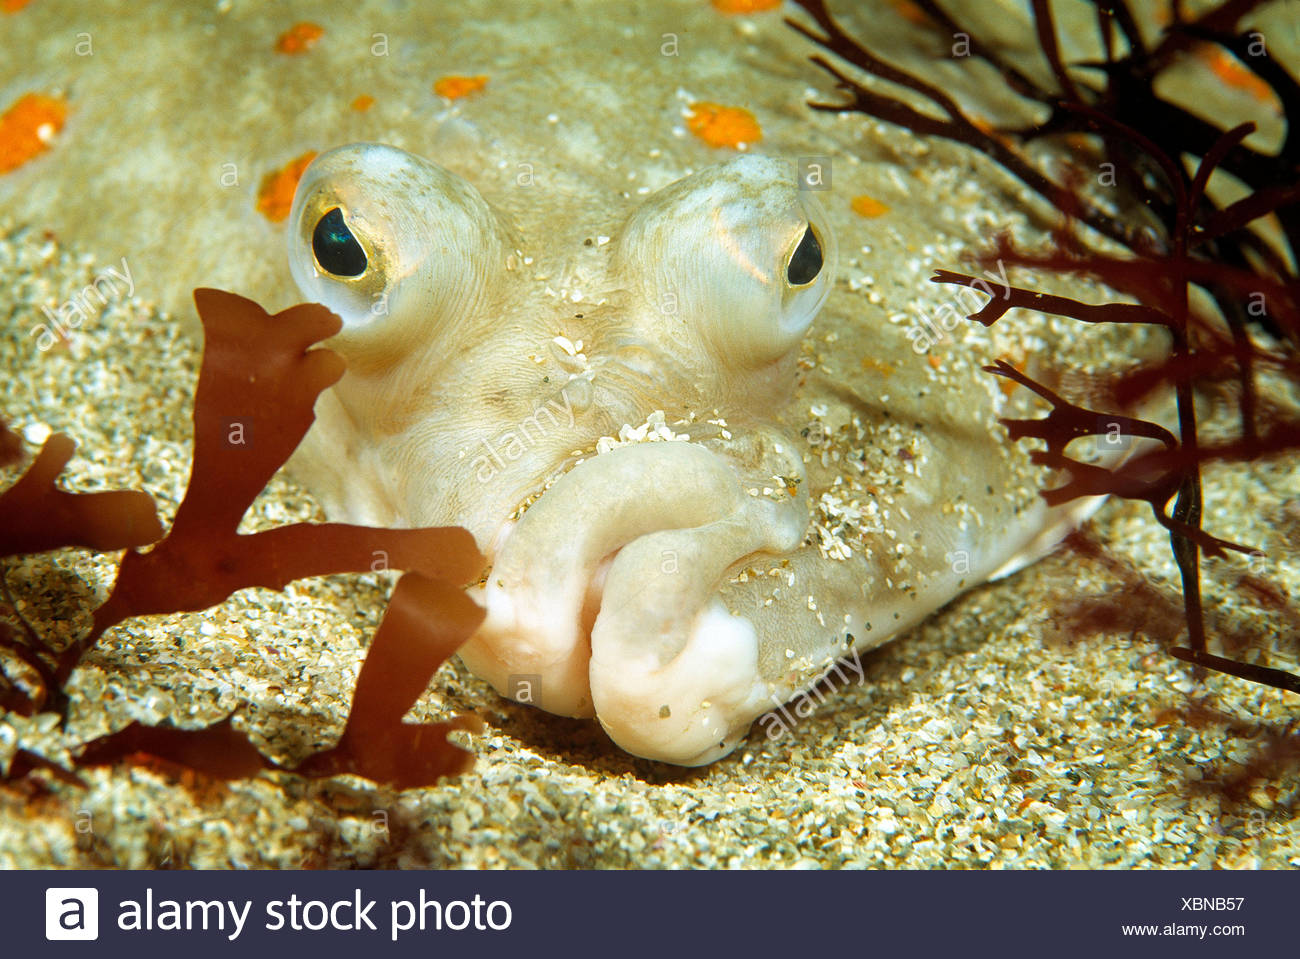 Wildlife. Fishes. Plaice lying on seabed. Close up of head. - Stock Image